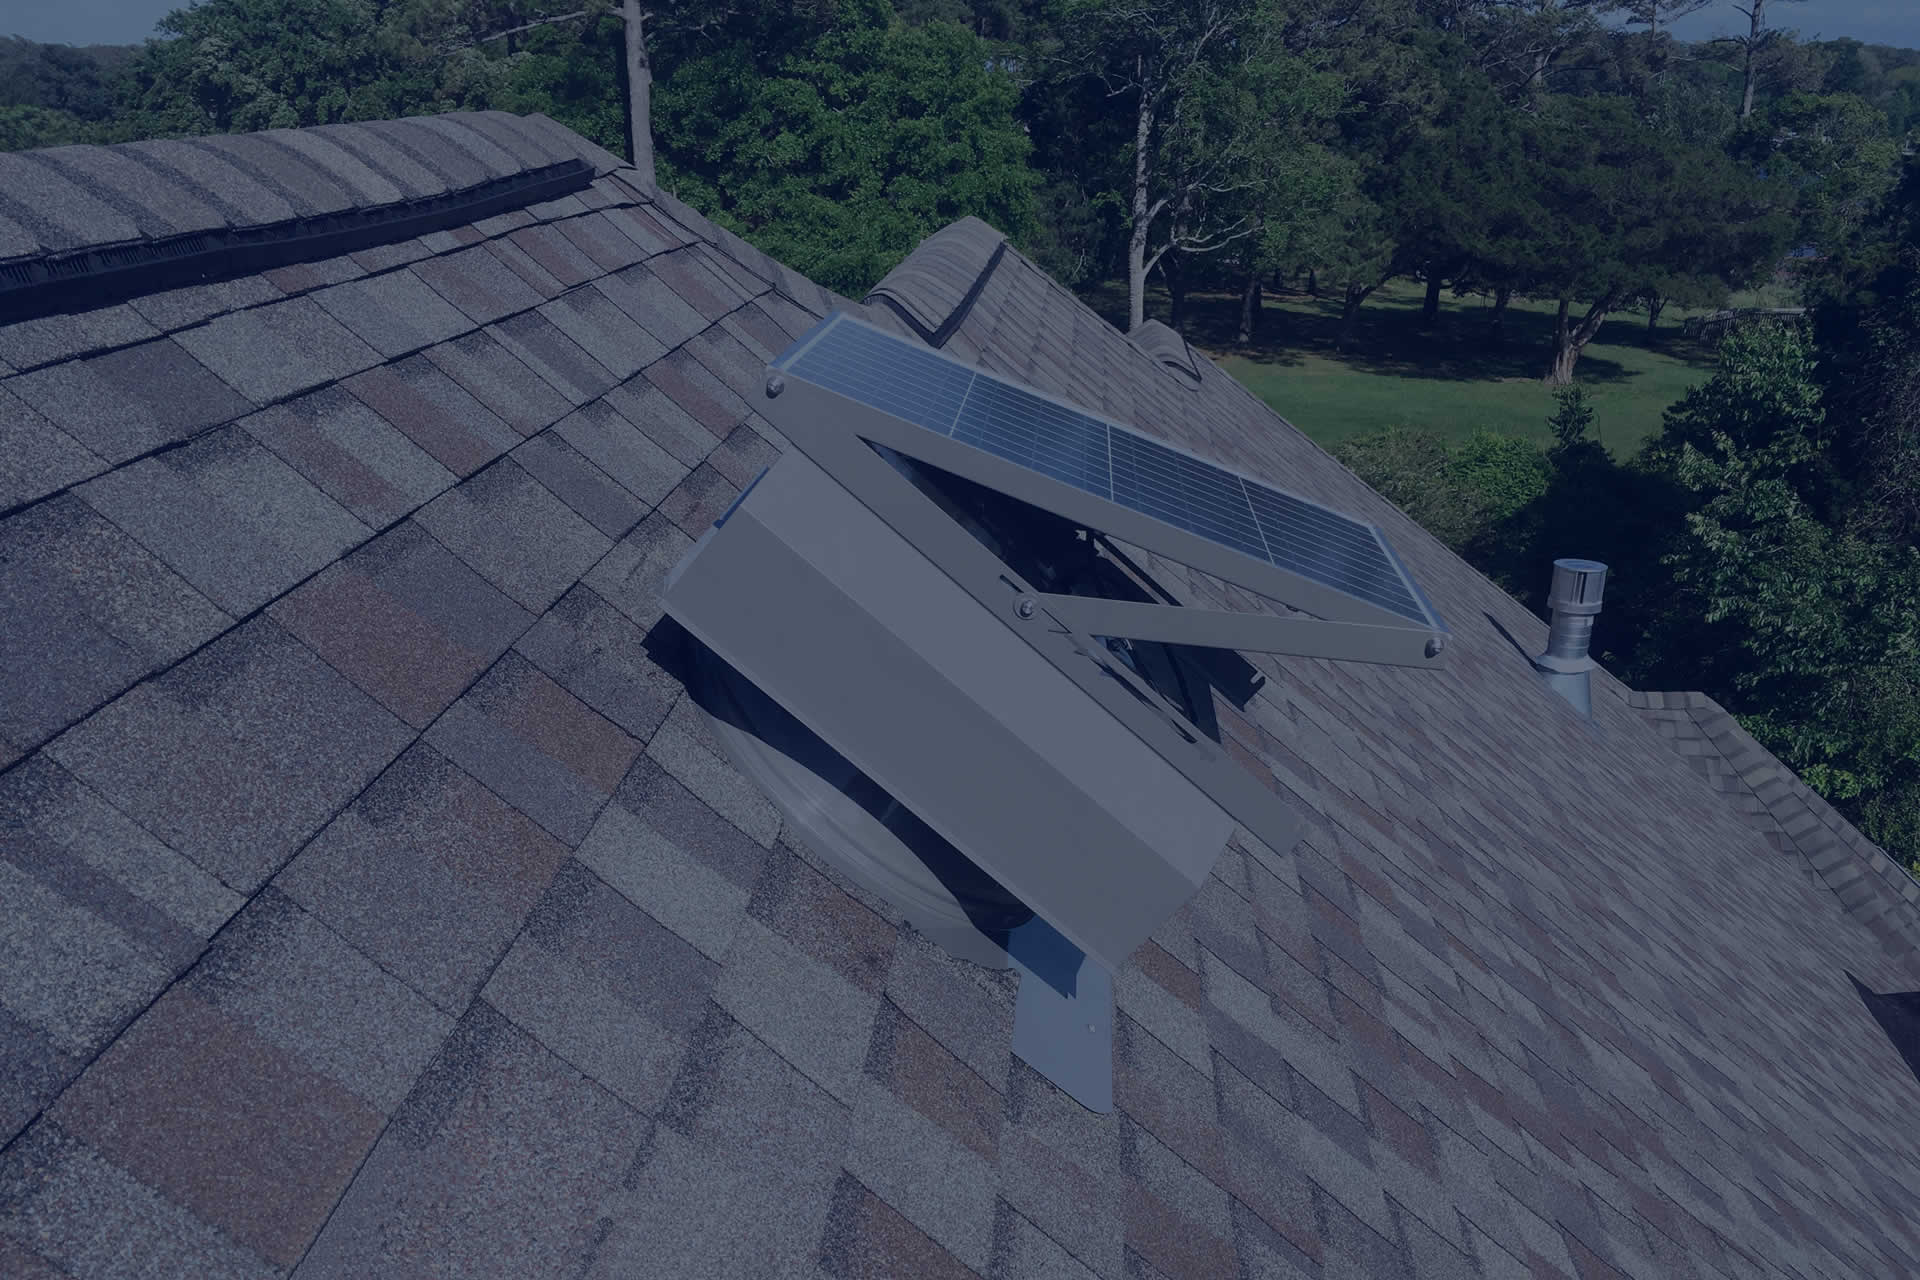 Solar attic fans are the latest technology in roof ventilation and green building standards.